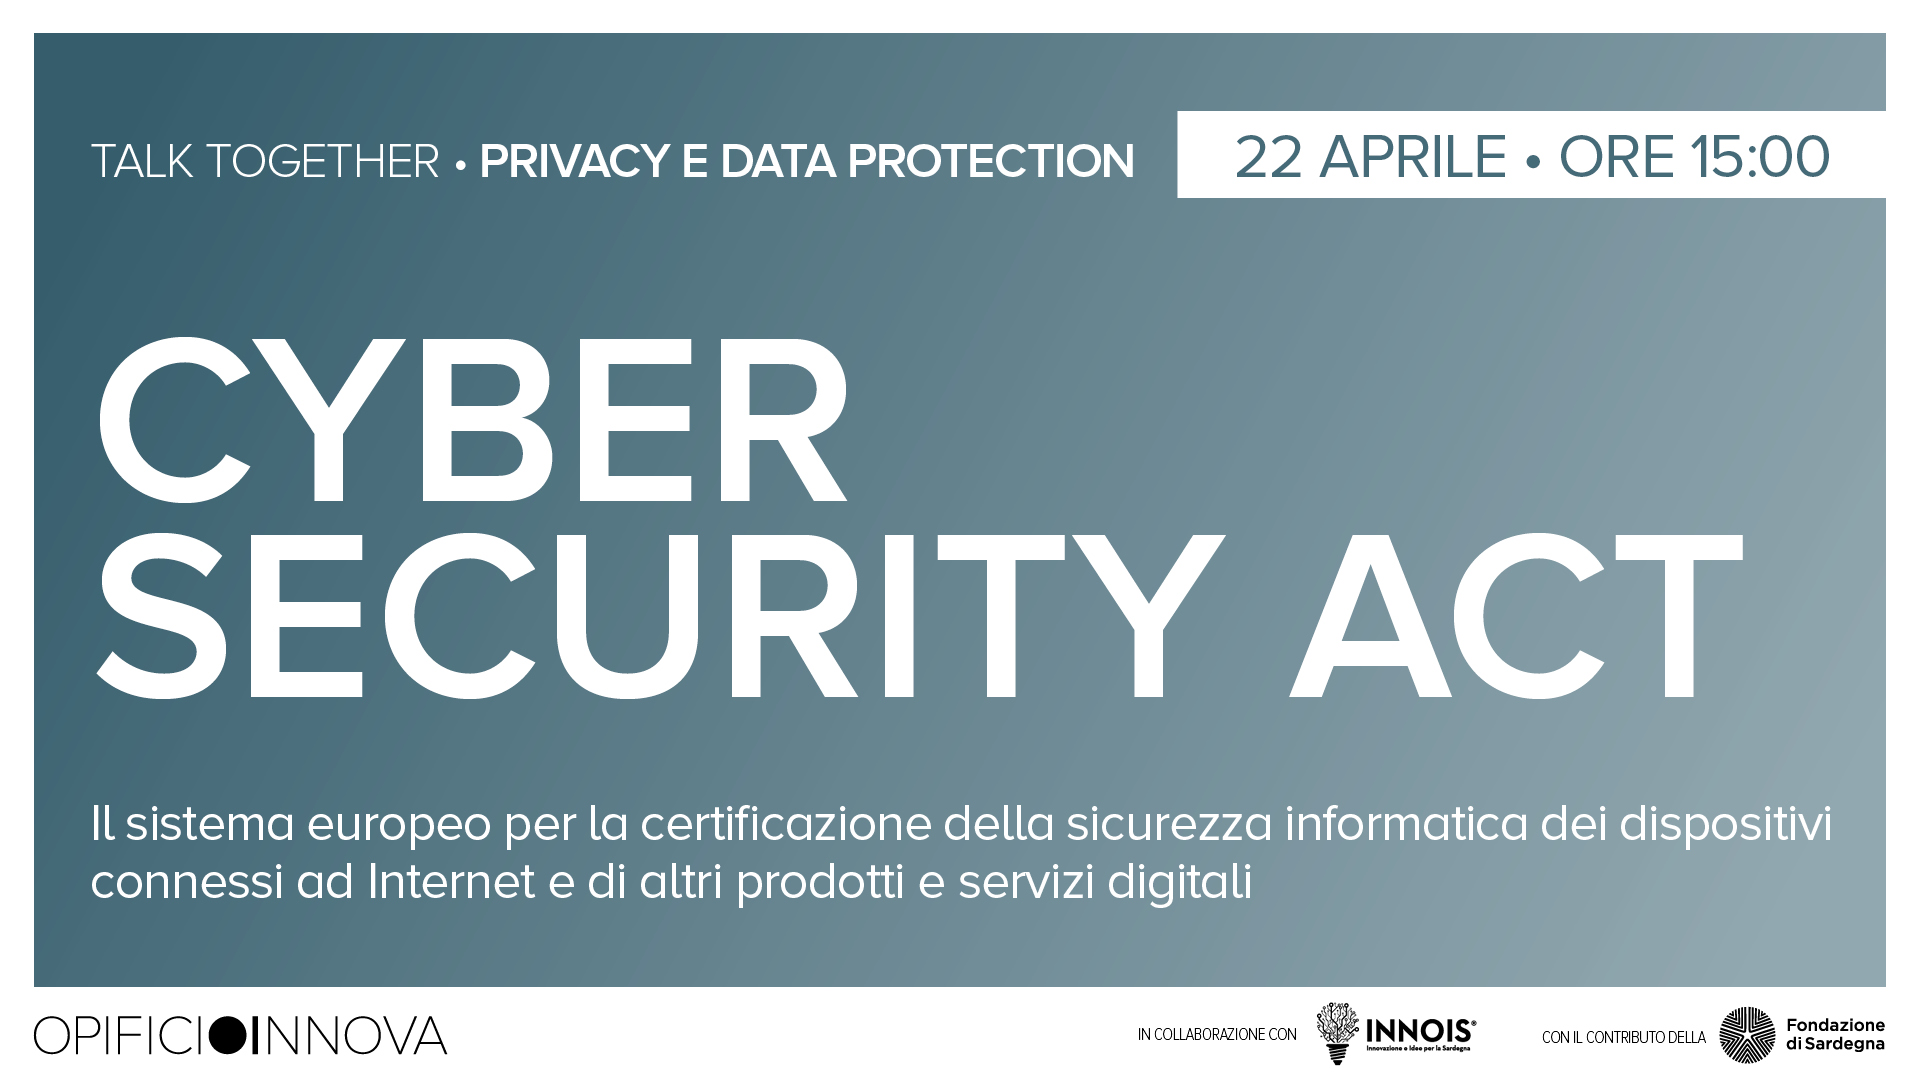 Cyber security Act </br>22-04-2021 ore 15:00